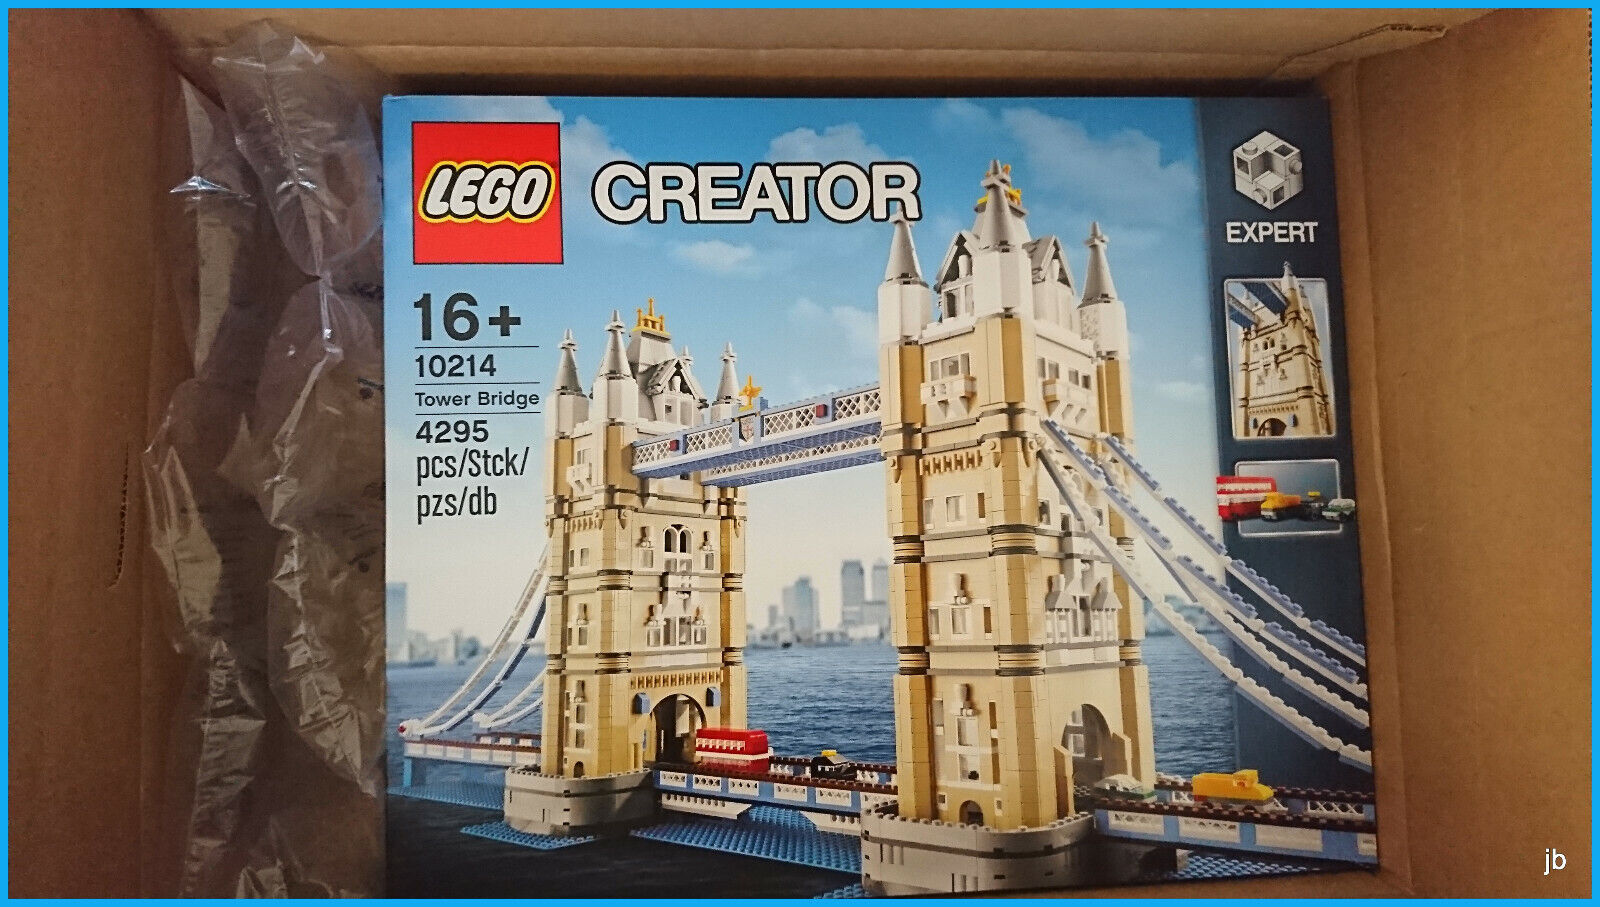 LEGO TOWER BRIDGE 10214 CREATOR RETIRED MODEL SOLD OUT